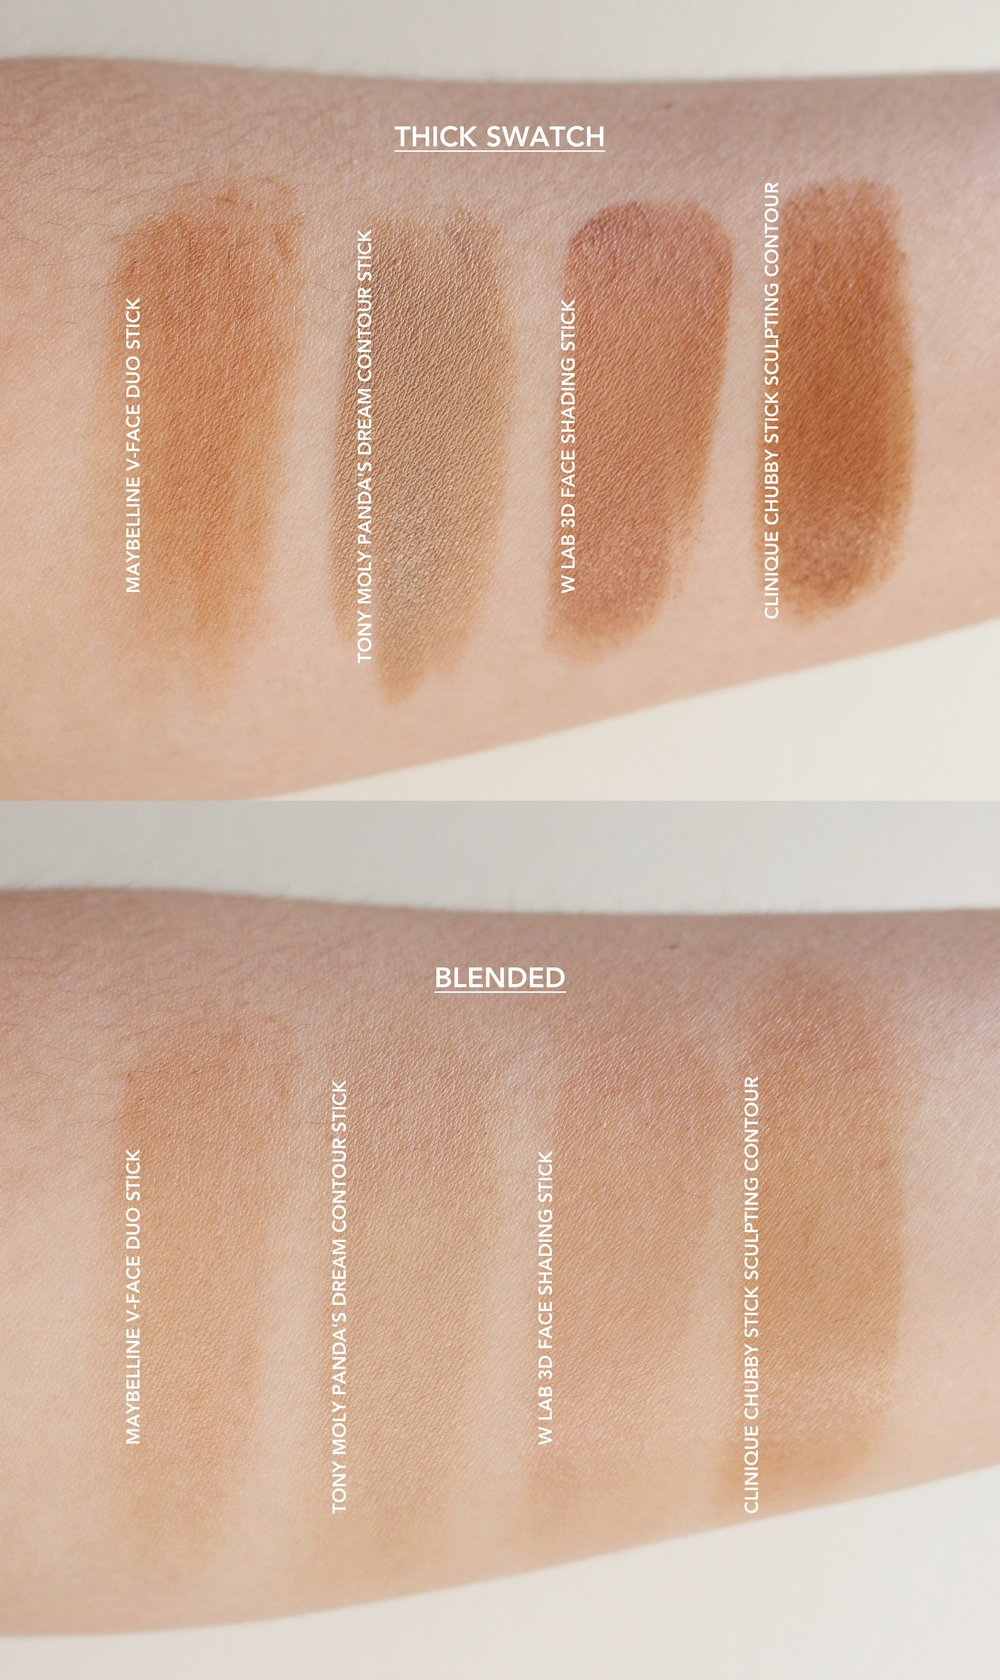 Duo Contour Stick by 3 Concept Eyes #6